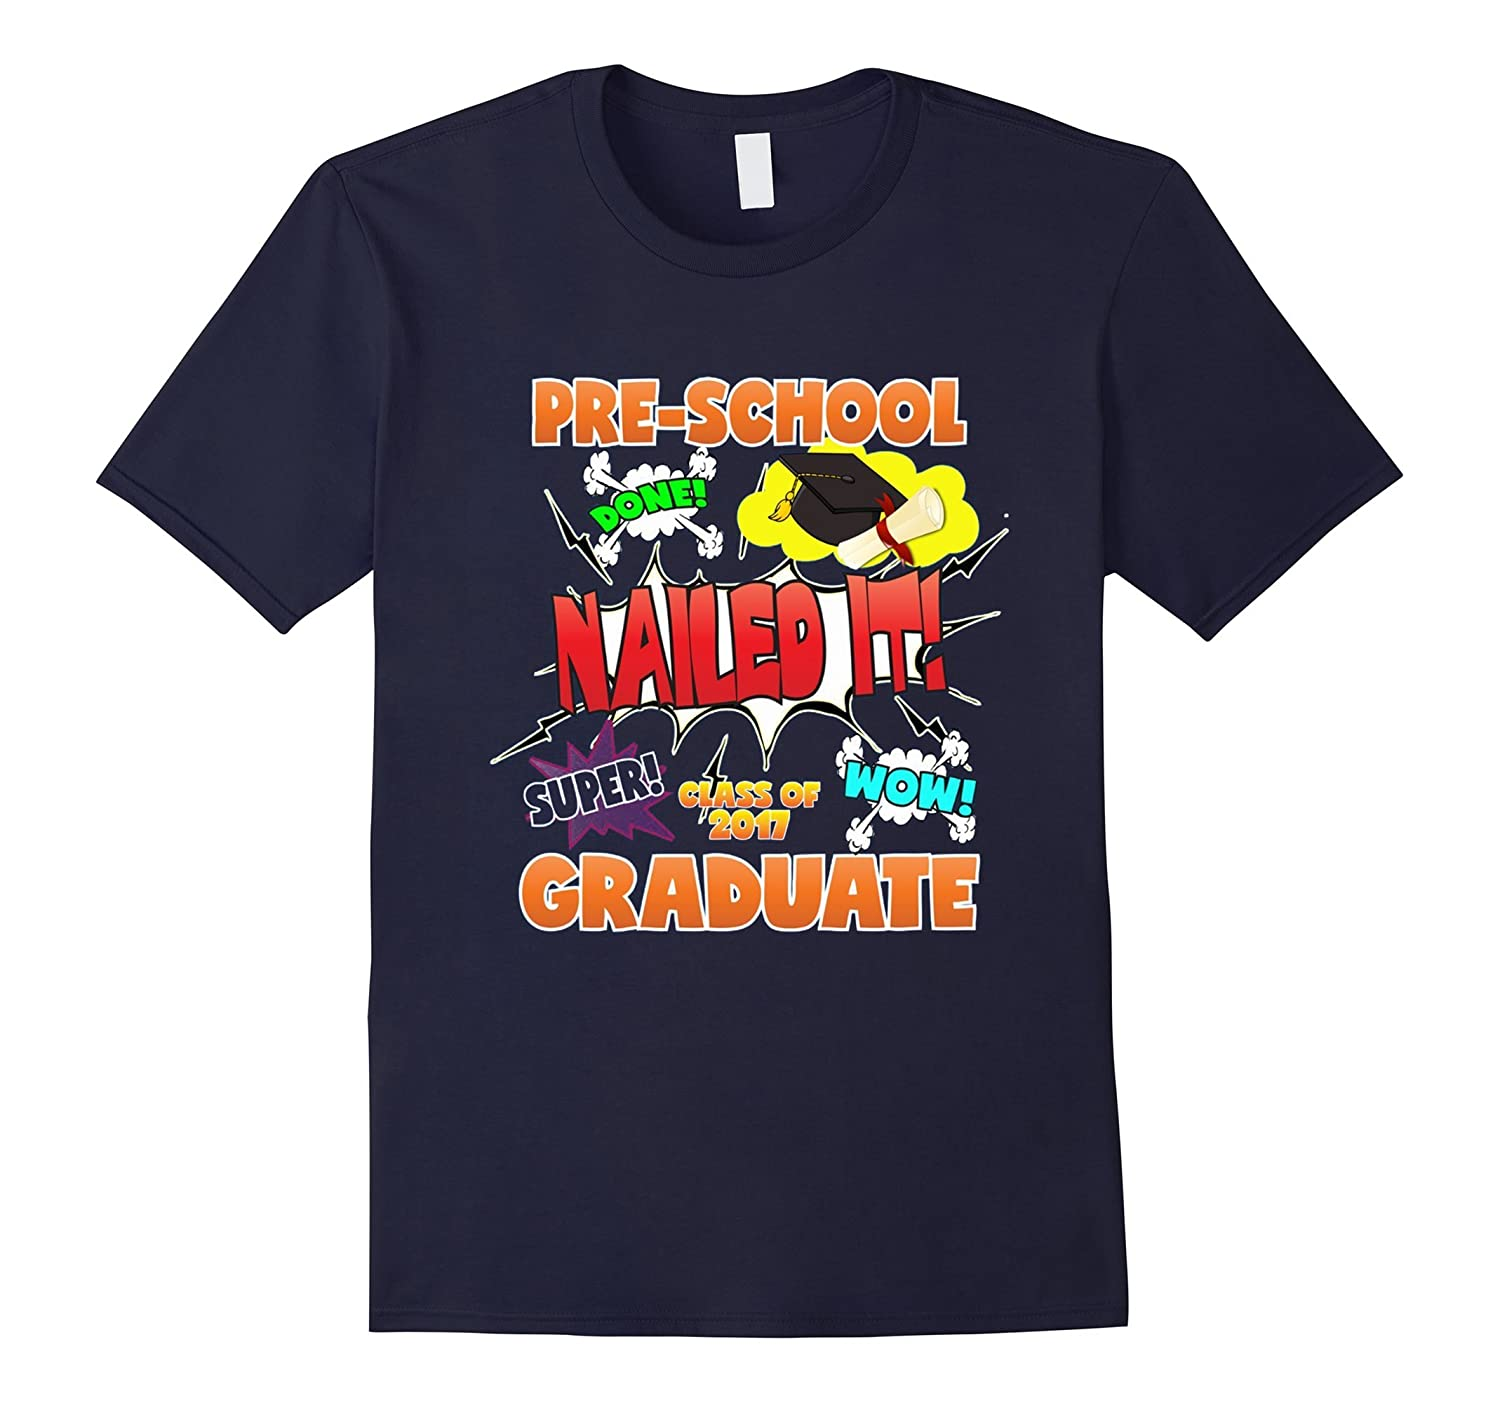 2017 Preschool Graduation Shirt Nailed It Cap Gown-CD